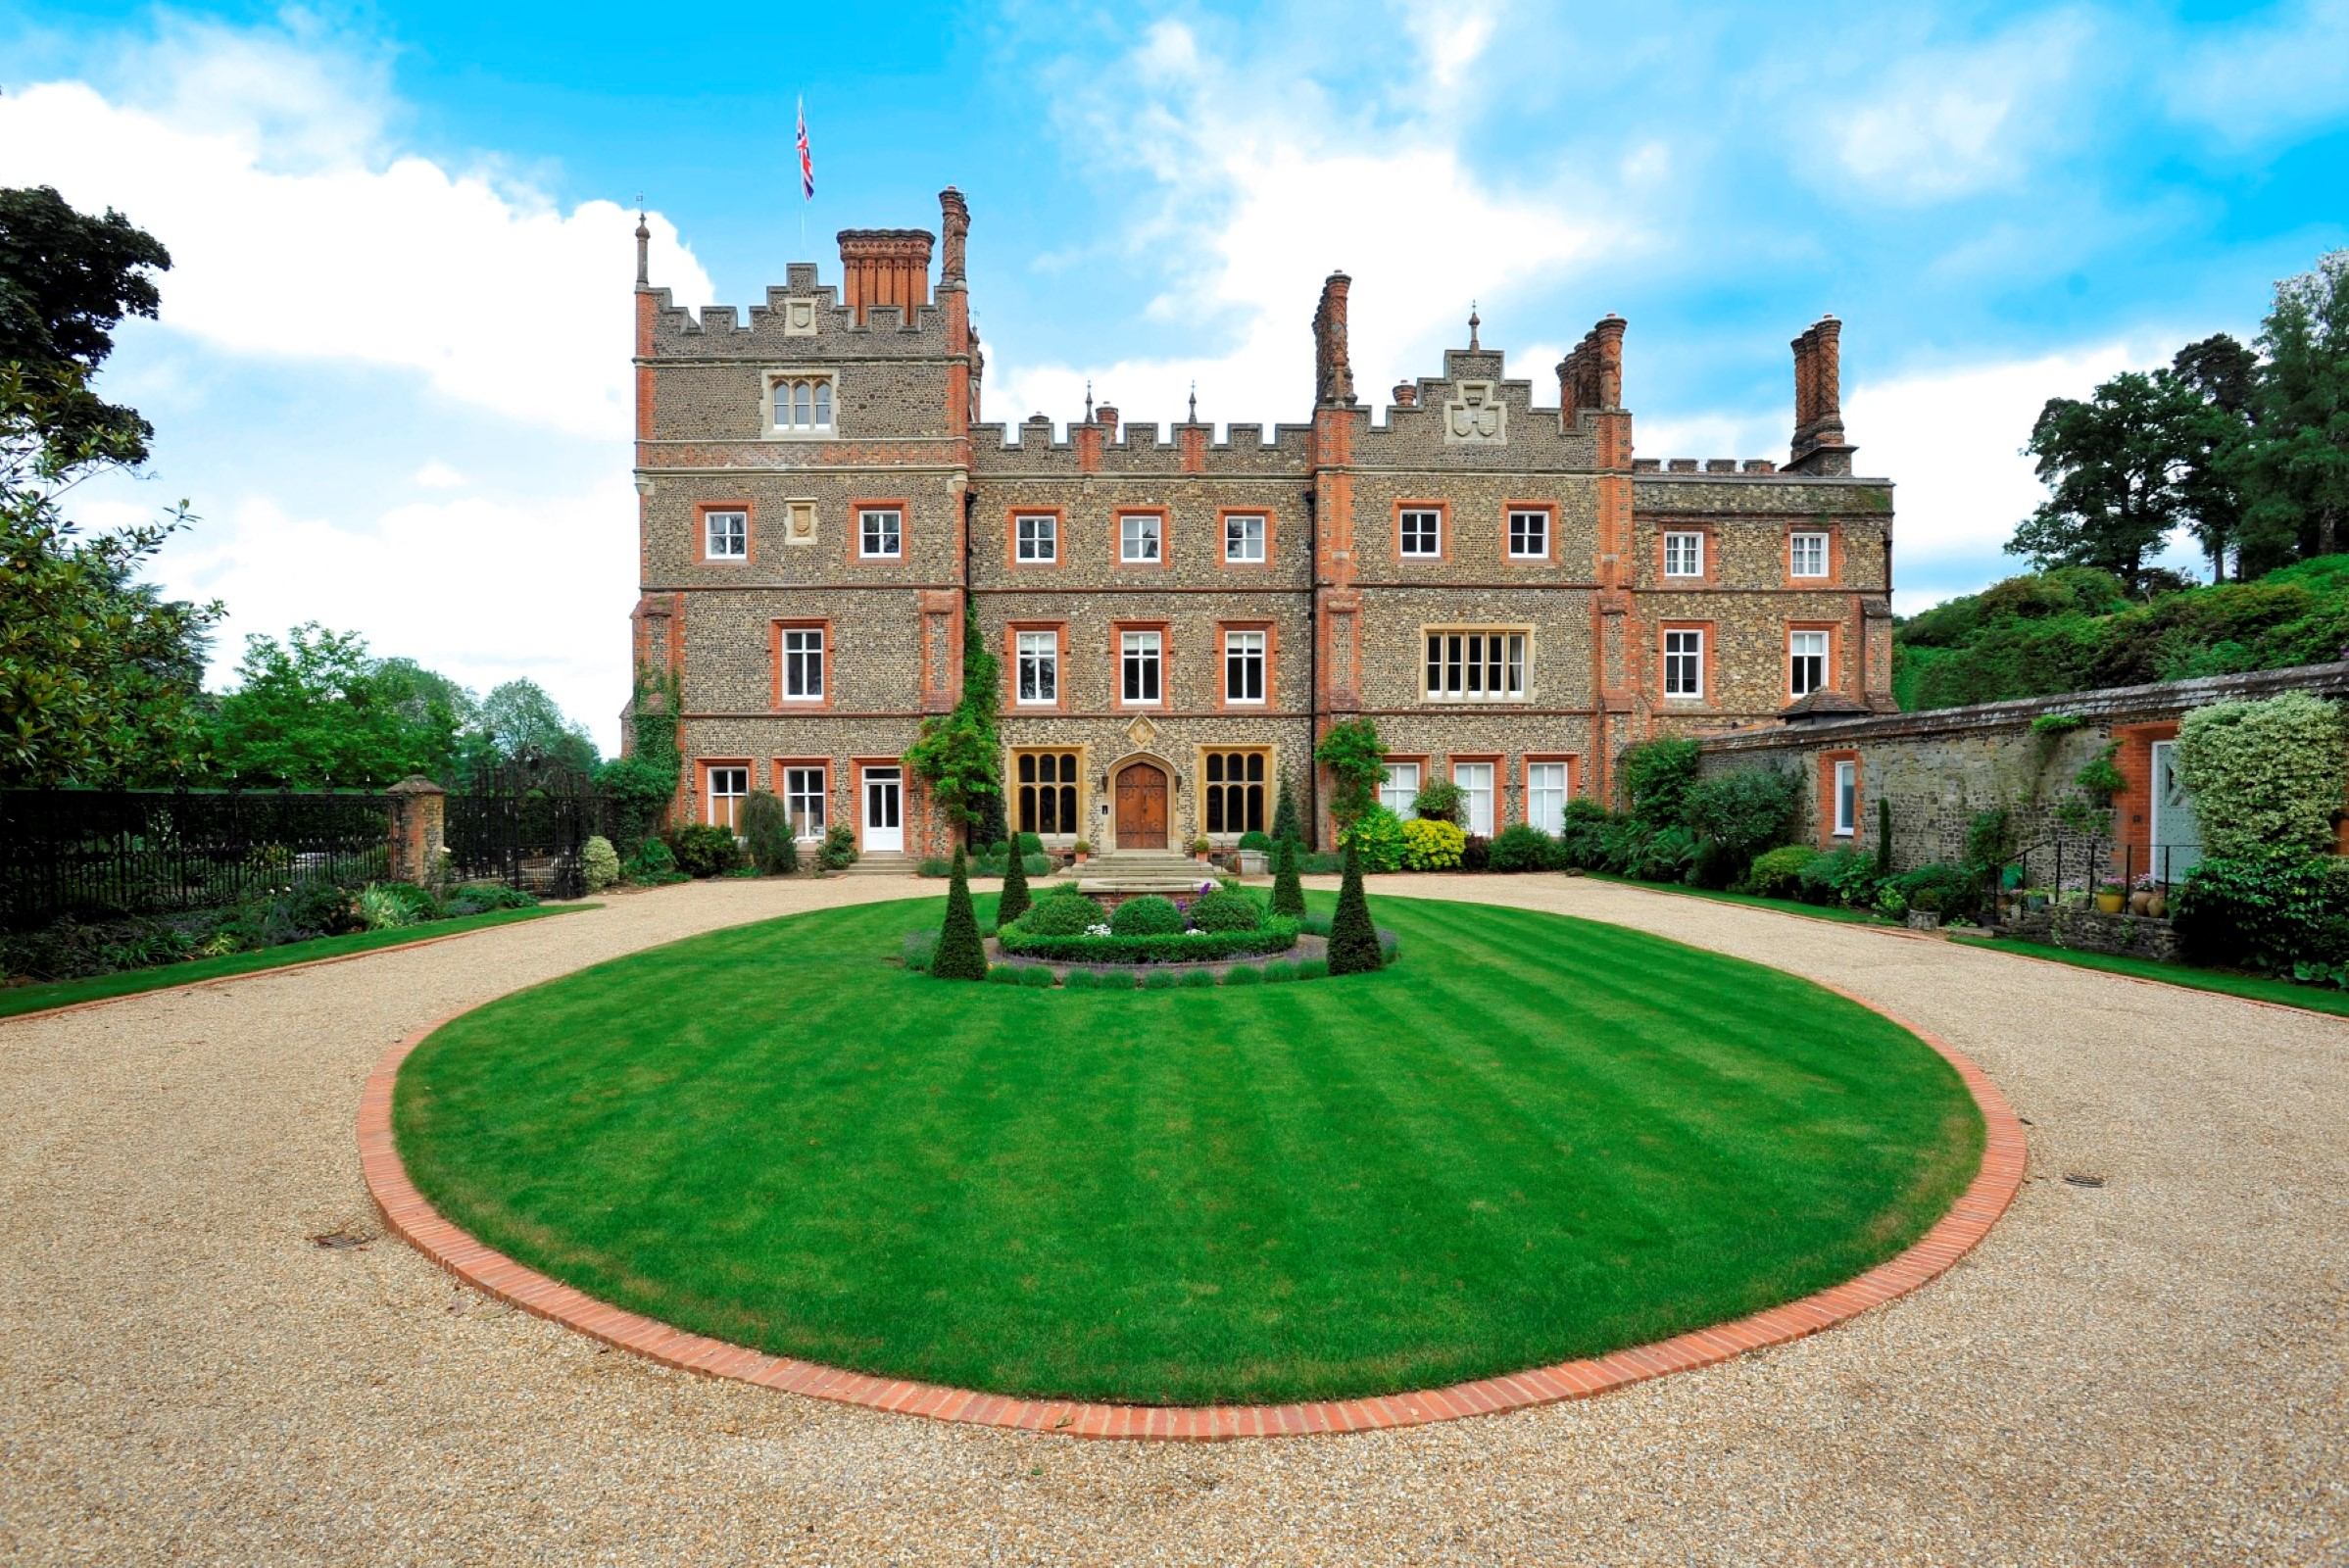 公寓 为 销售 在 Albury Park Mansion Albury Park Mansion New Road Guildford, 英格兰, GU59BB 英国